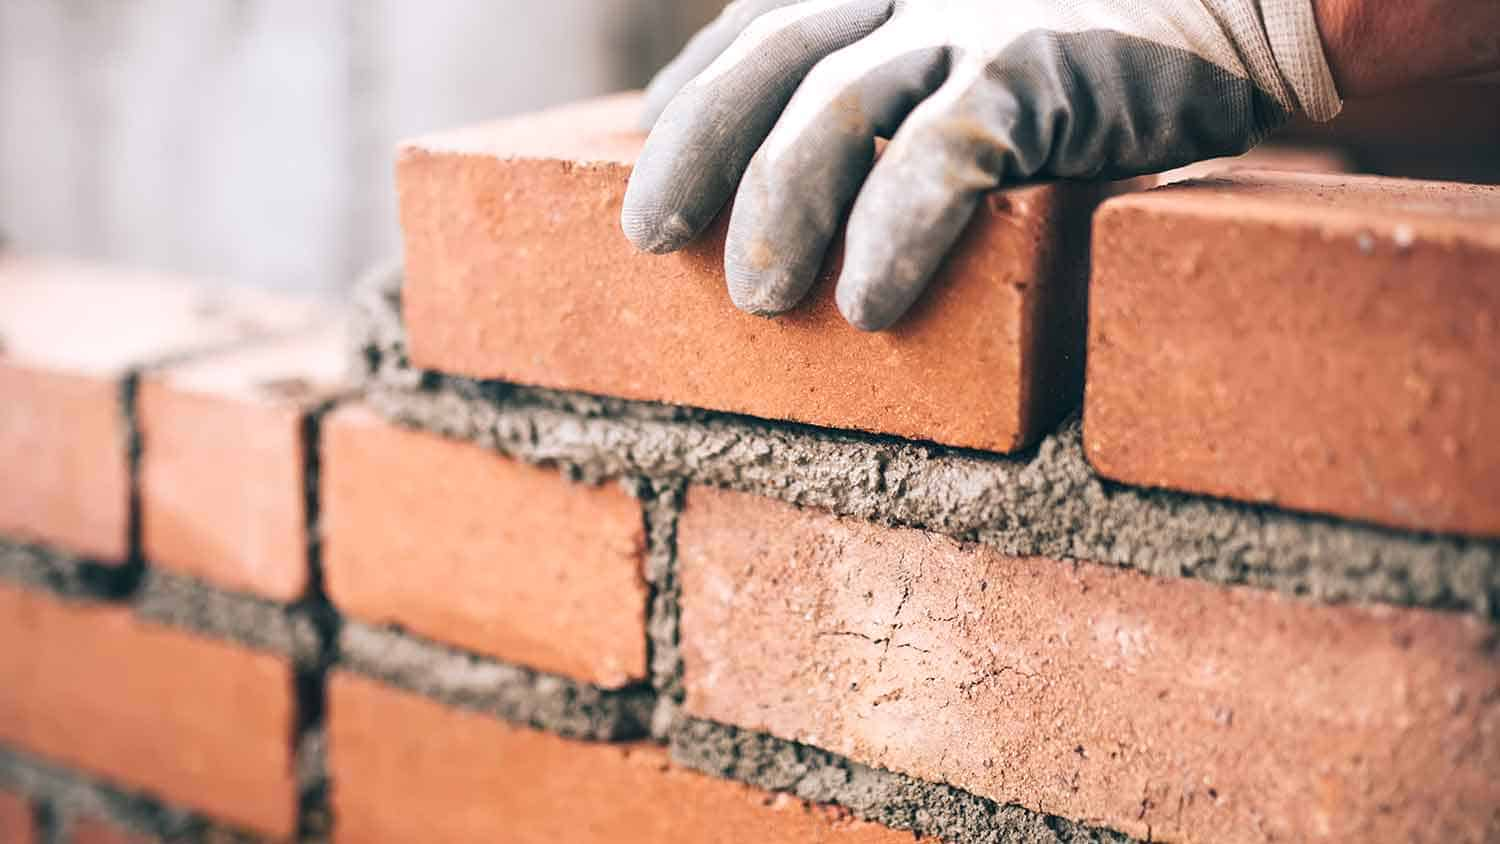 Bricklayer cementing down bricks